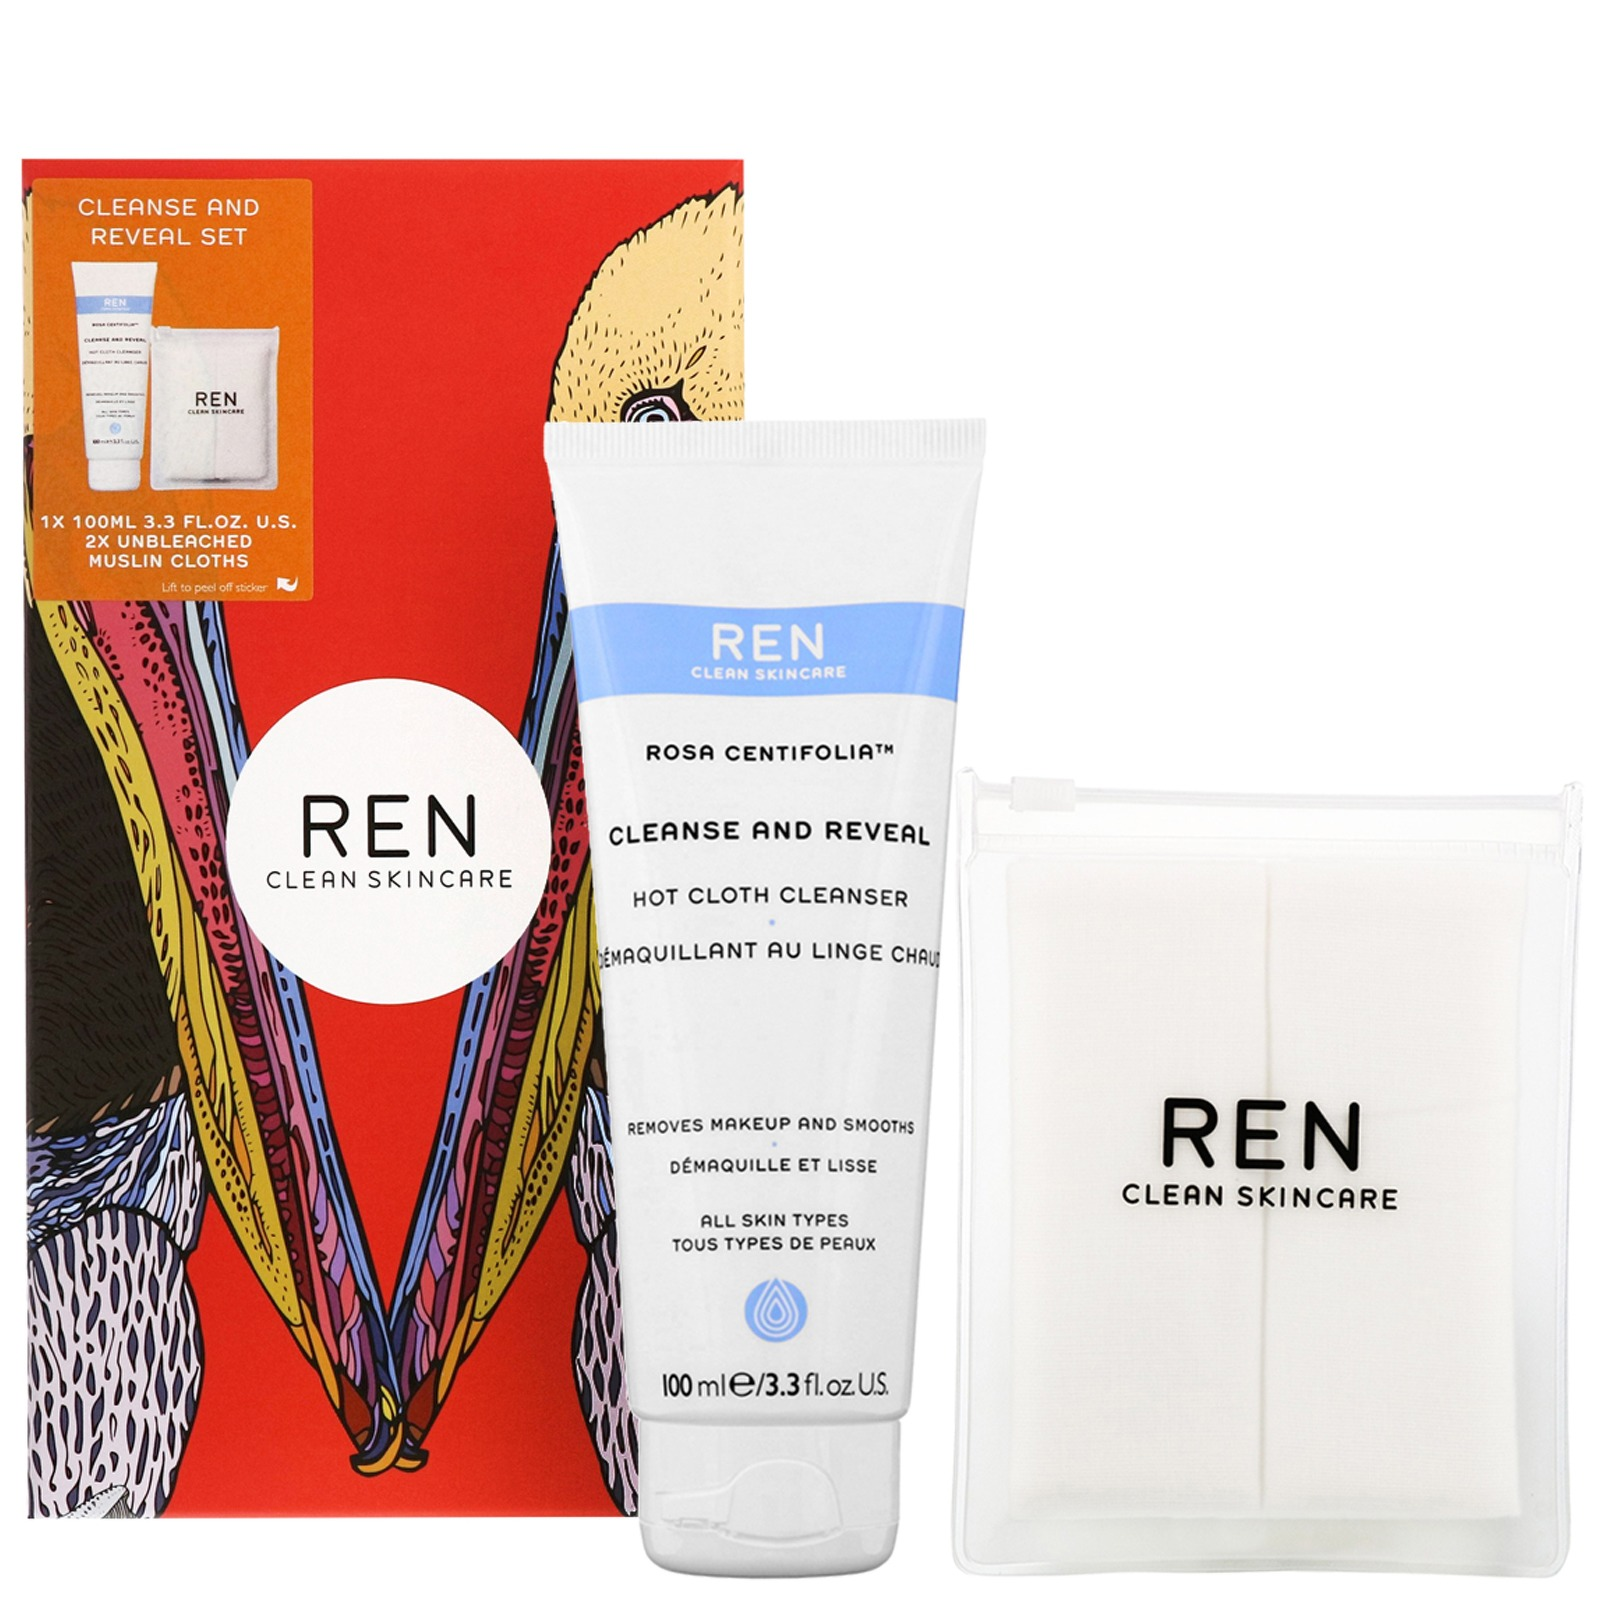 REN Clean Skincare Gifts Rosa Centifolia Cleanse and Reveal Hot Cloth Cleanser